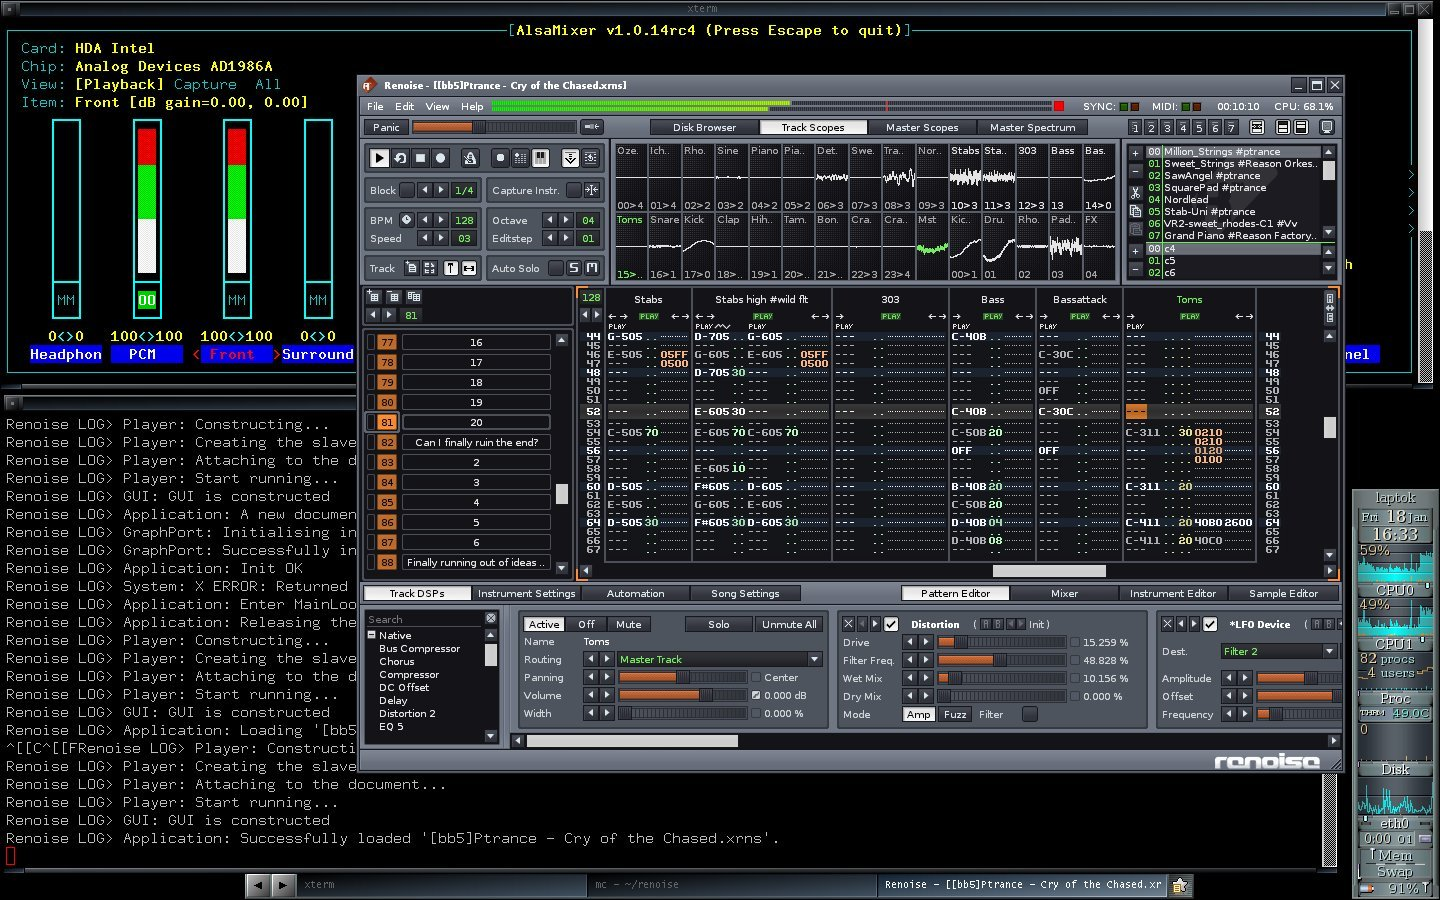 Renoise 3.1 for Linux